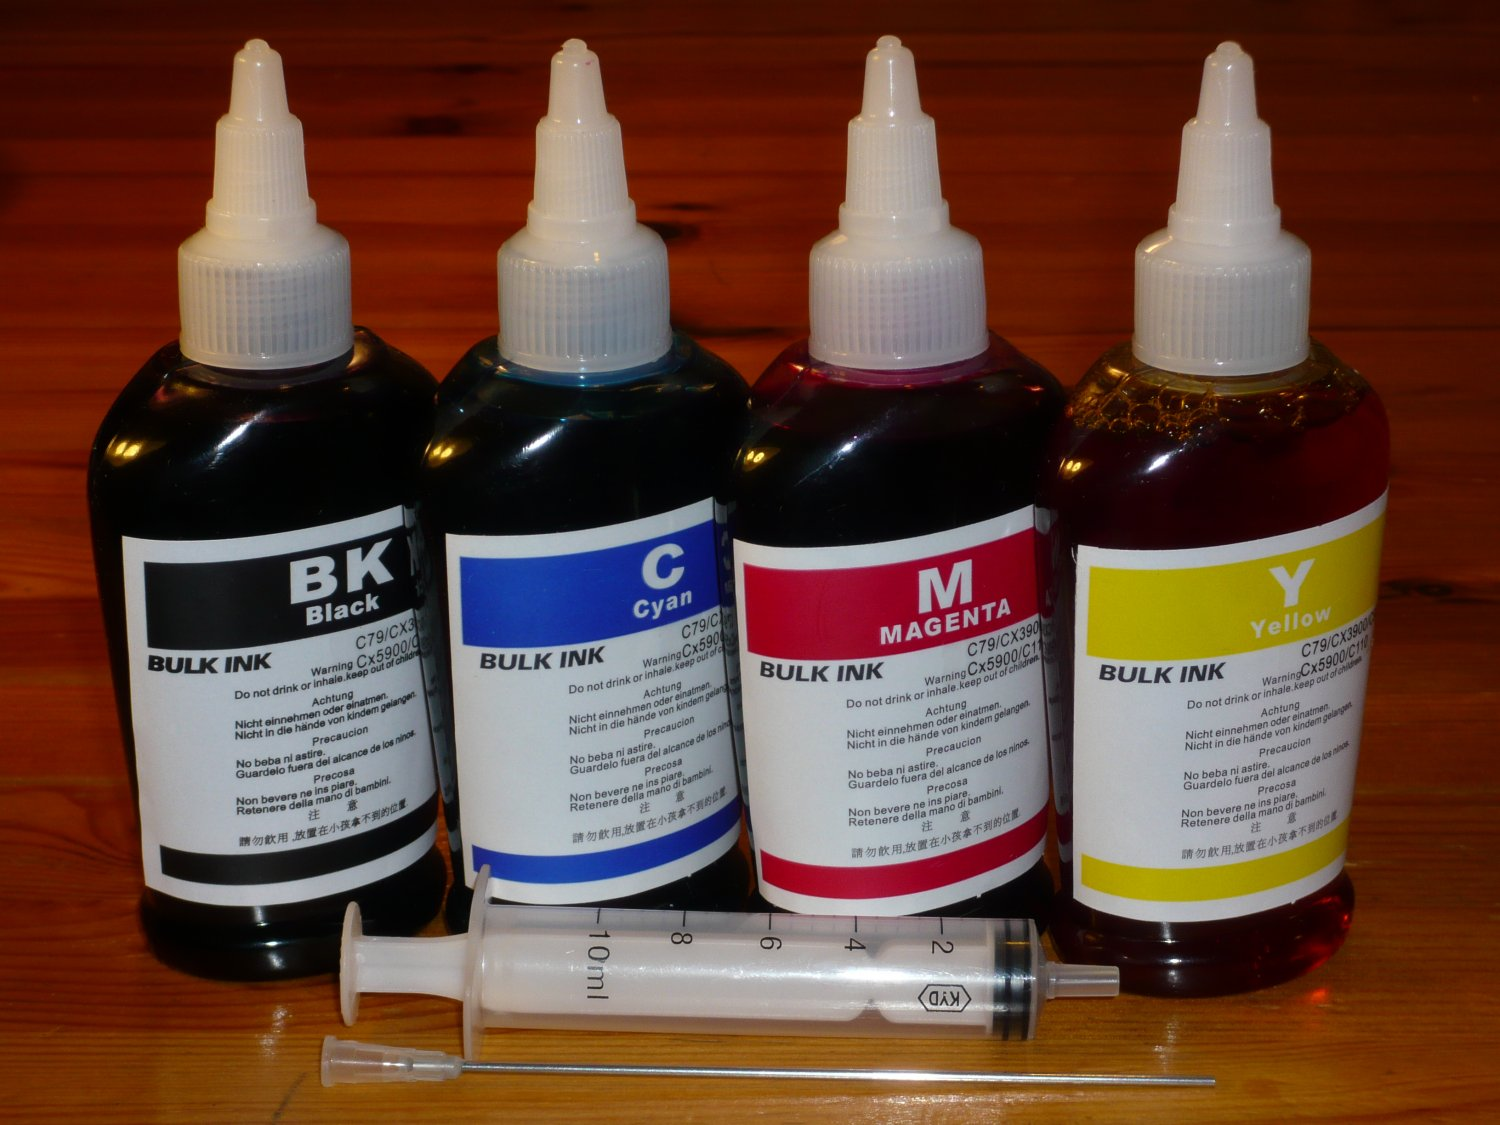 Bulk refill ink for CANON ink printer, 100ml x 4 bottles (Black, Cyan, Magenta, Yellow)